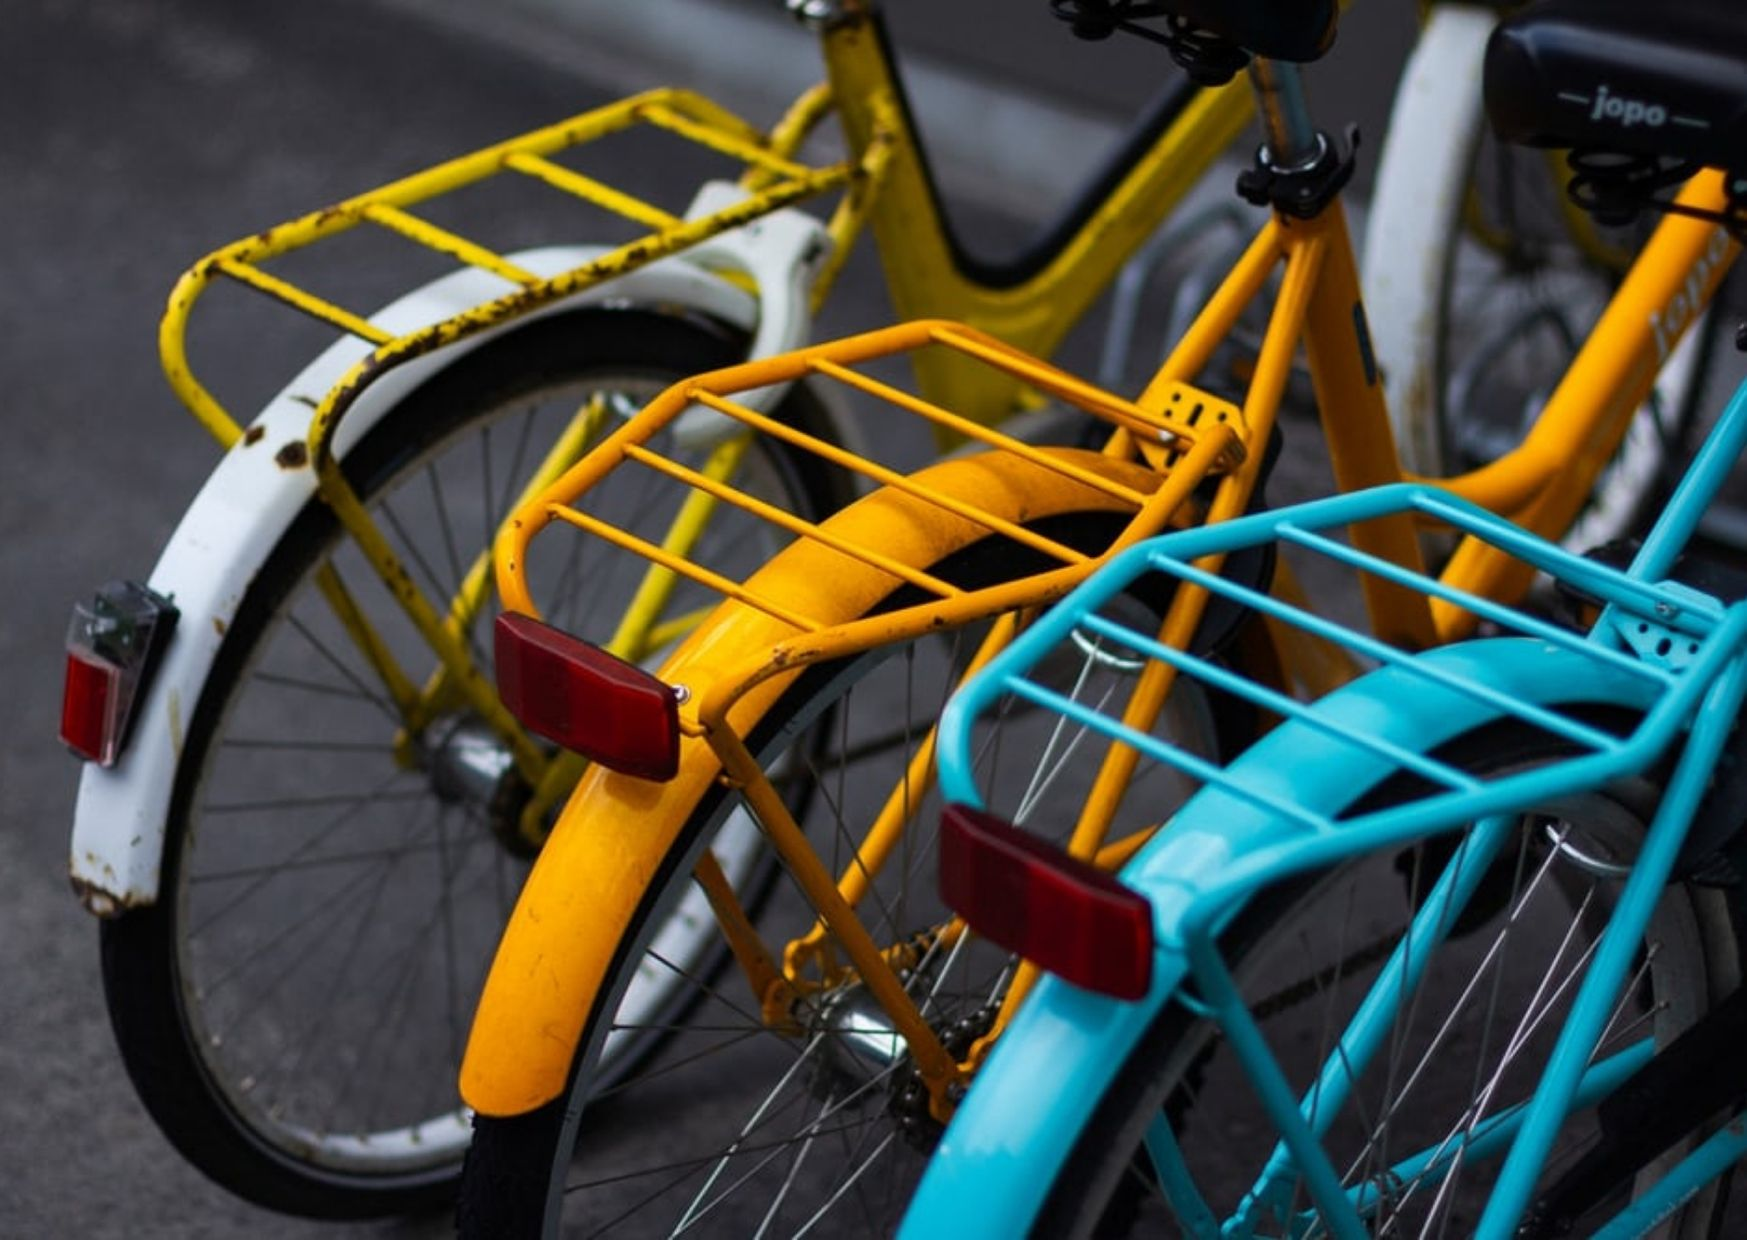 Brussels to extend bike parking network by 2030